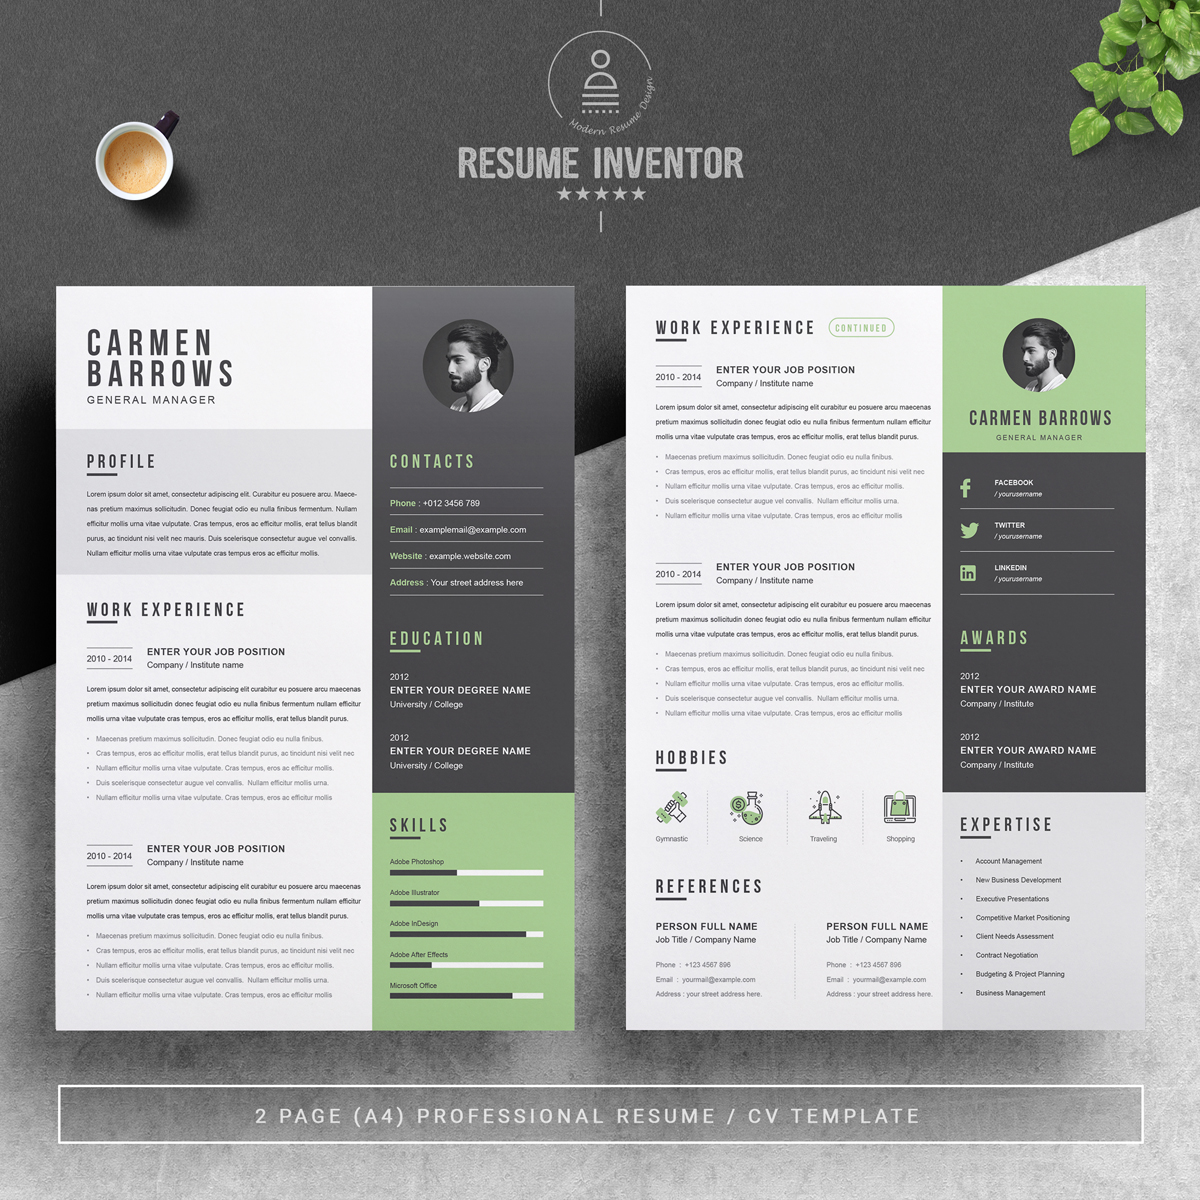 https://s3u.tmimgcdn.com/1860567-1577966856424_02_2-Pages-Free-Resume-Design-Template.jpg